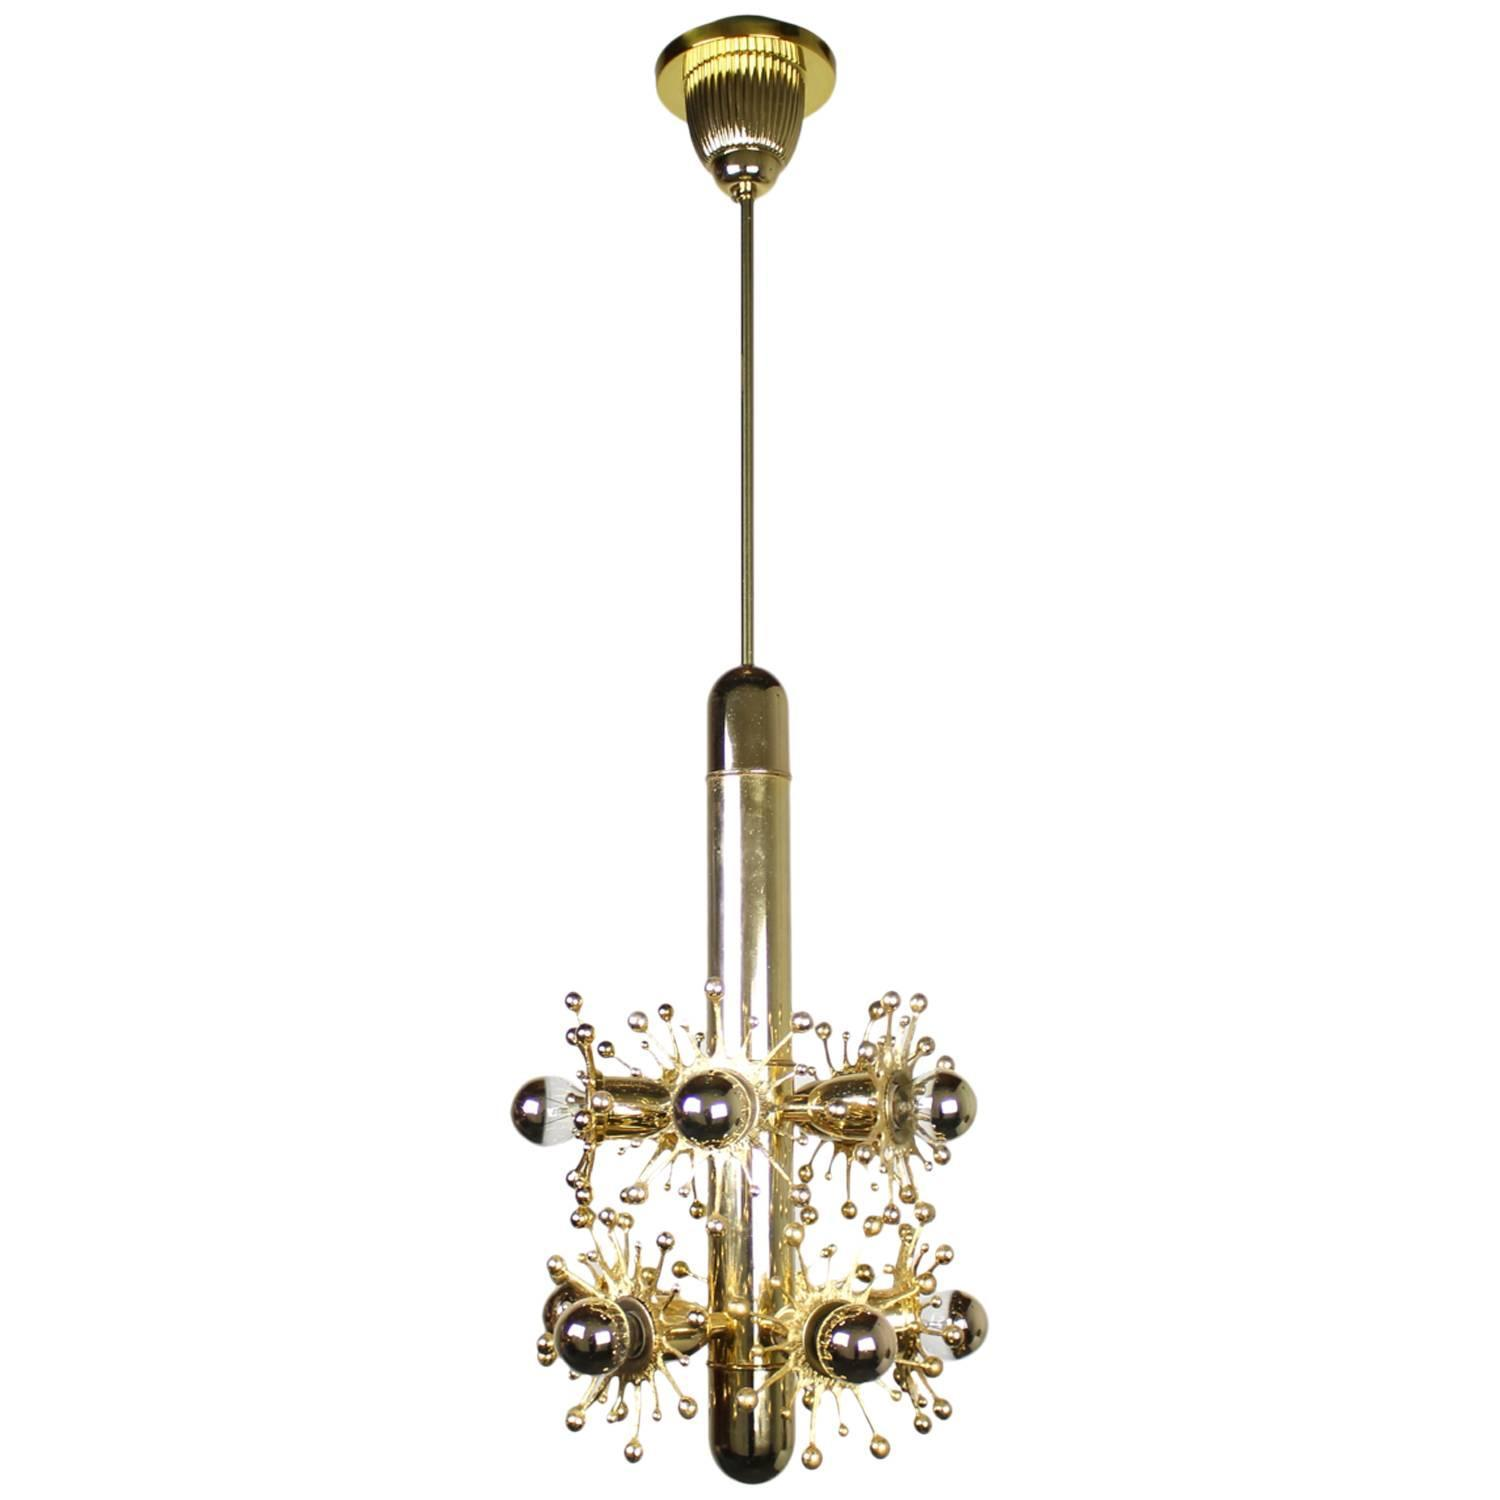 Midcentury Gold Sputnik Style Pendant Light With Mirrored